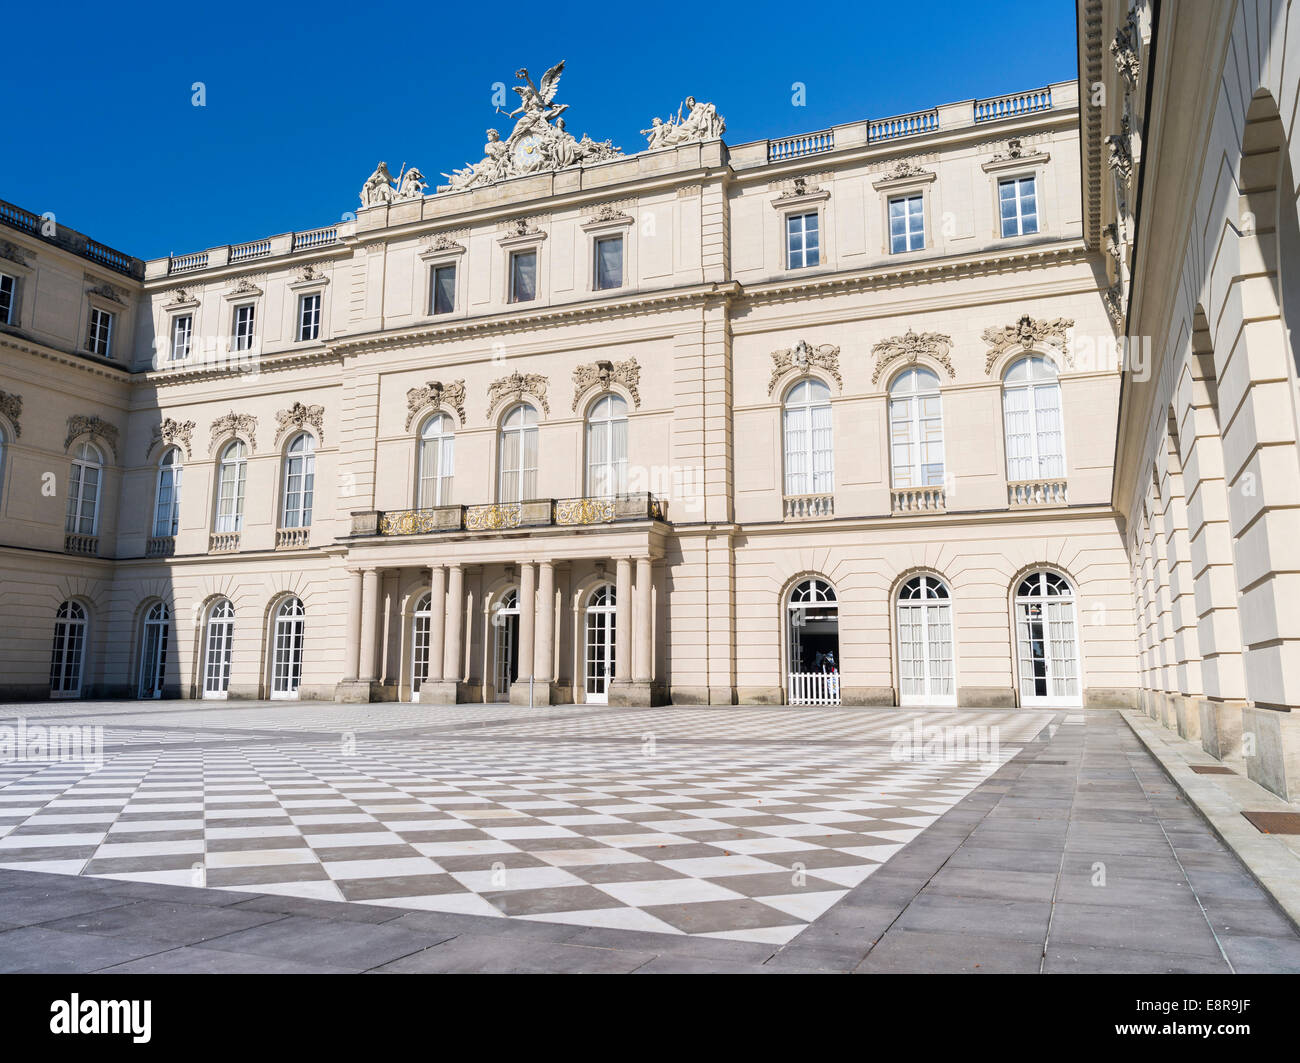 Herrenchiemsee Palace, located on an island in lake Chiemsee, Bavaria, Germany. (Large format sizes available) - Stock Image